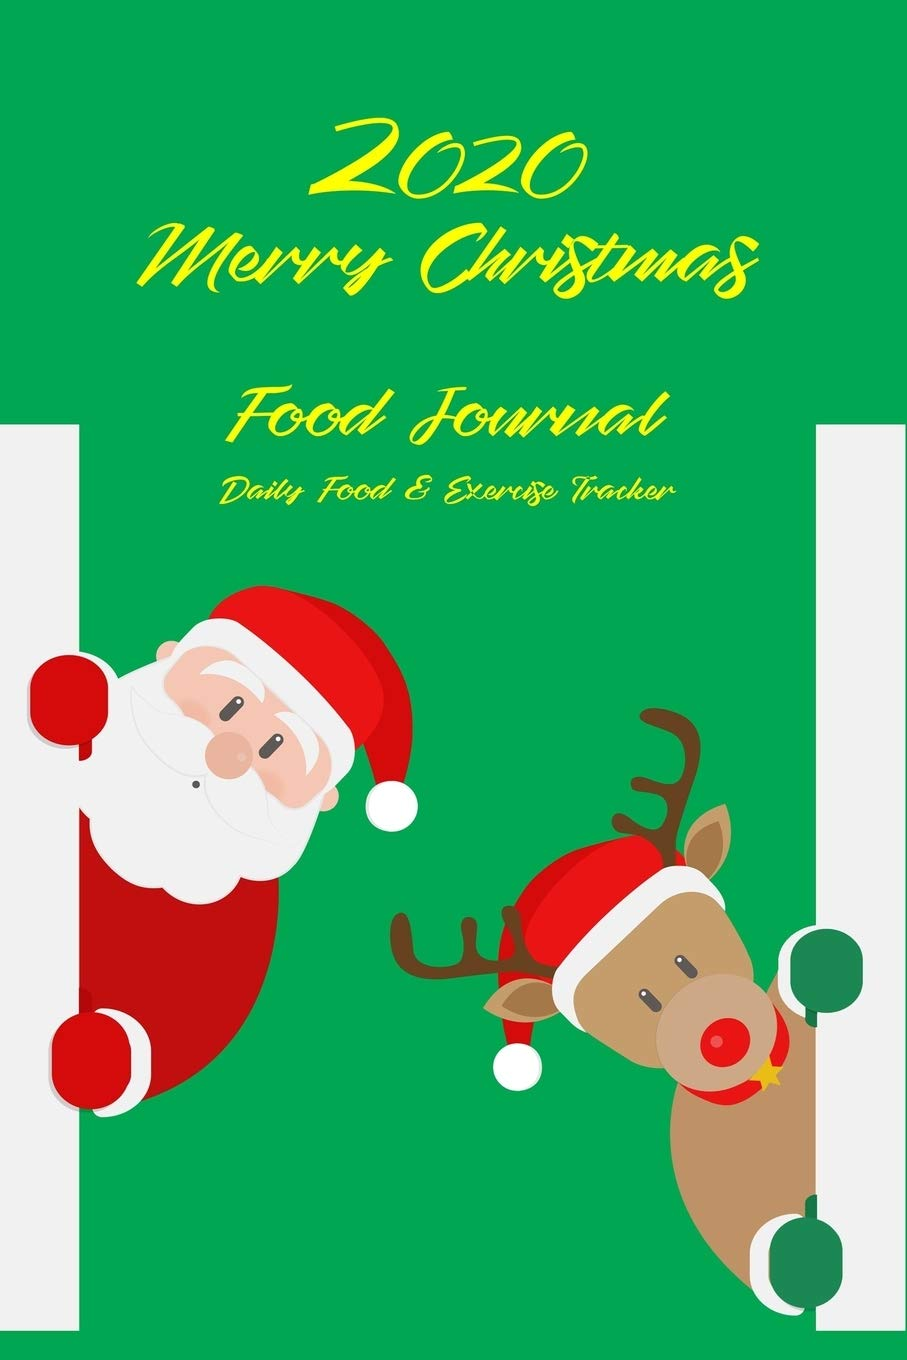 Christmas Food For Coworkers 2020 Under 10 2020 Merry Christmas Food Journal Daily Food & Exercise Tracker